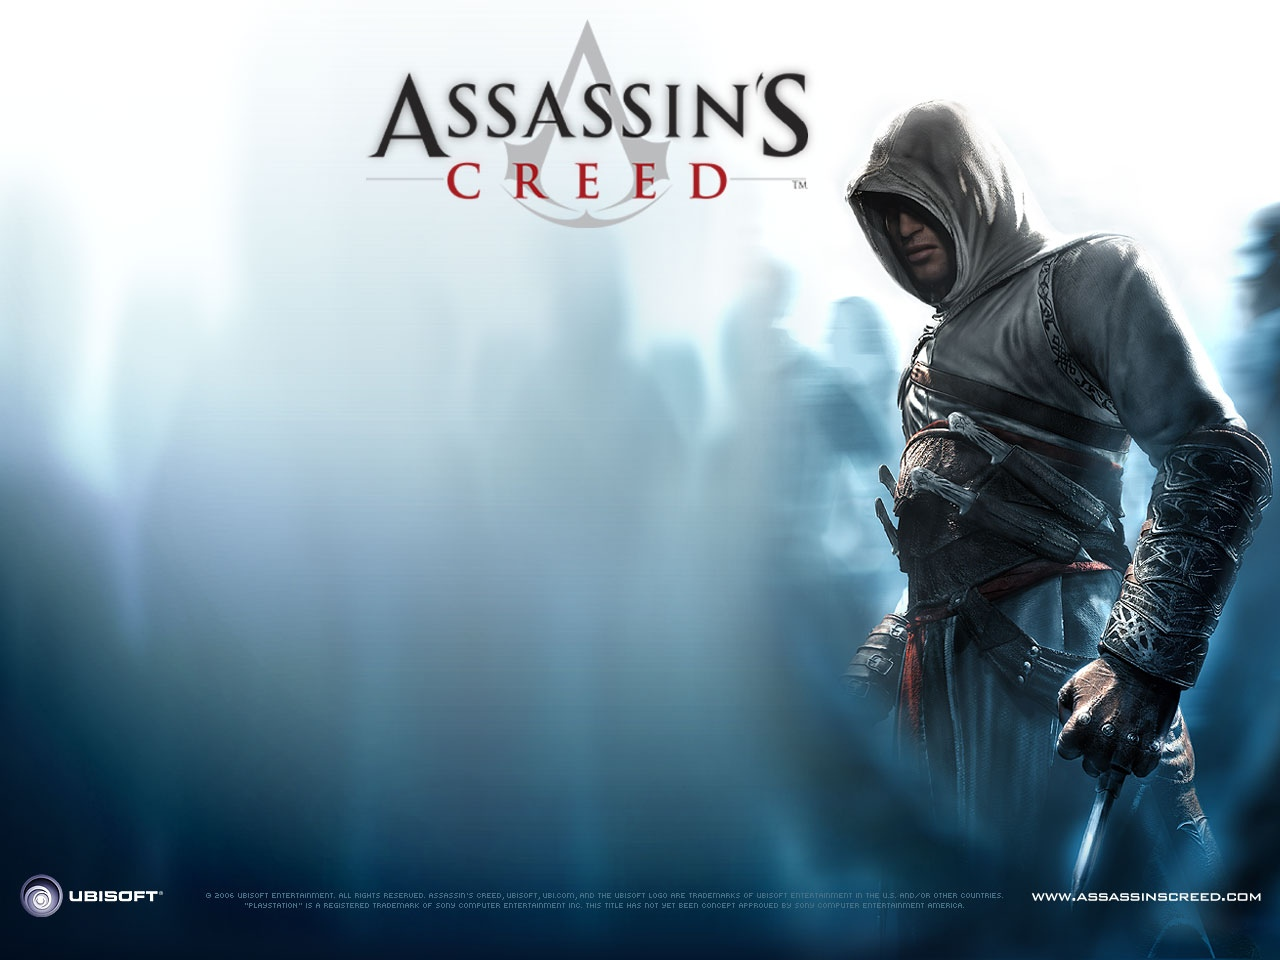 http://3.bp.blogspot.com/-uWNs220J_Ew/T5fv4XqA7II/AAAAAAAAAFk/MatdYPD0B-I/s1600/assassins-creed-promo-wallpaper-8191.jpg